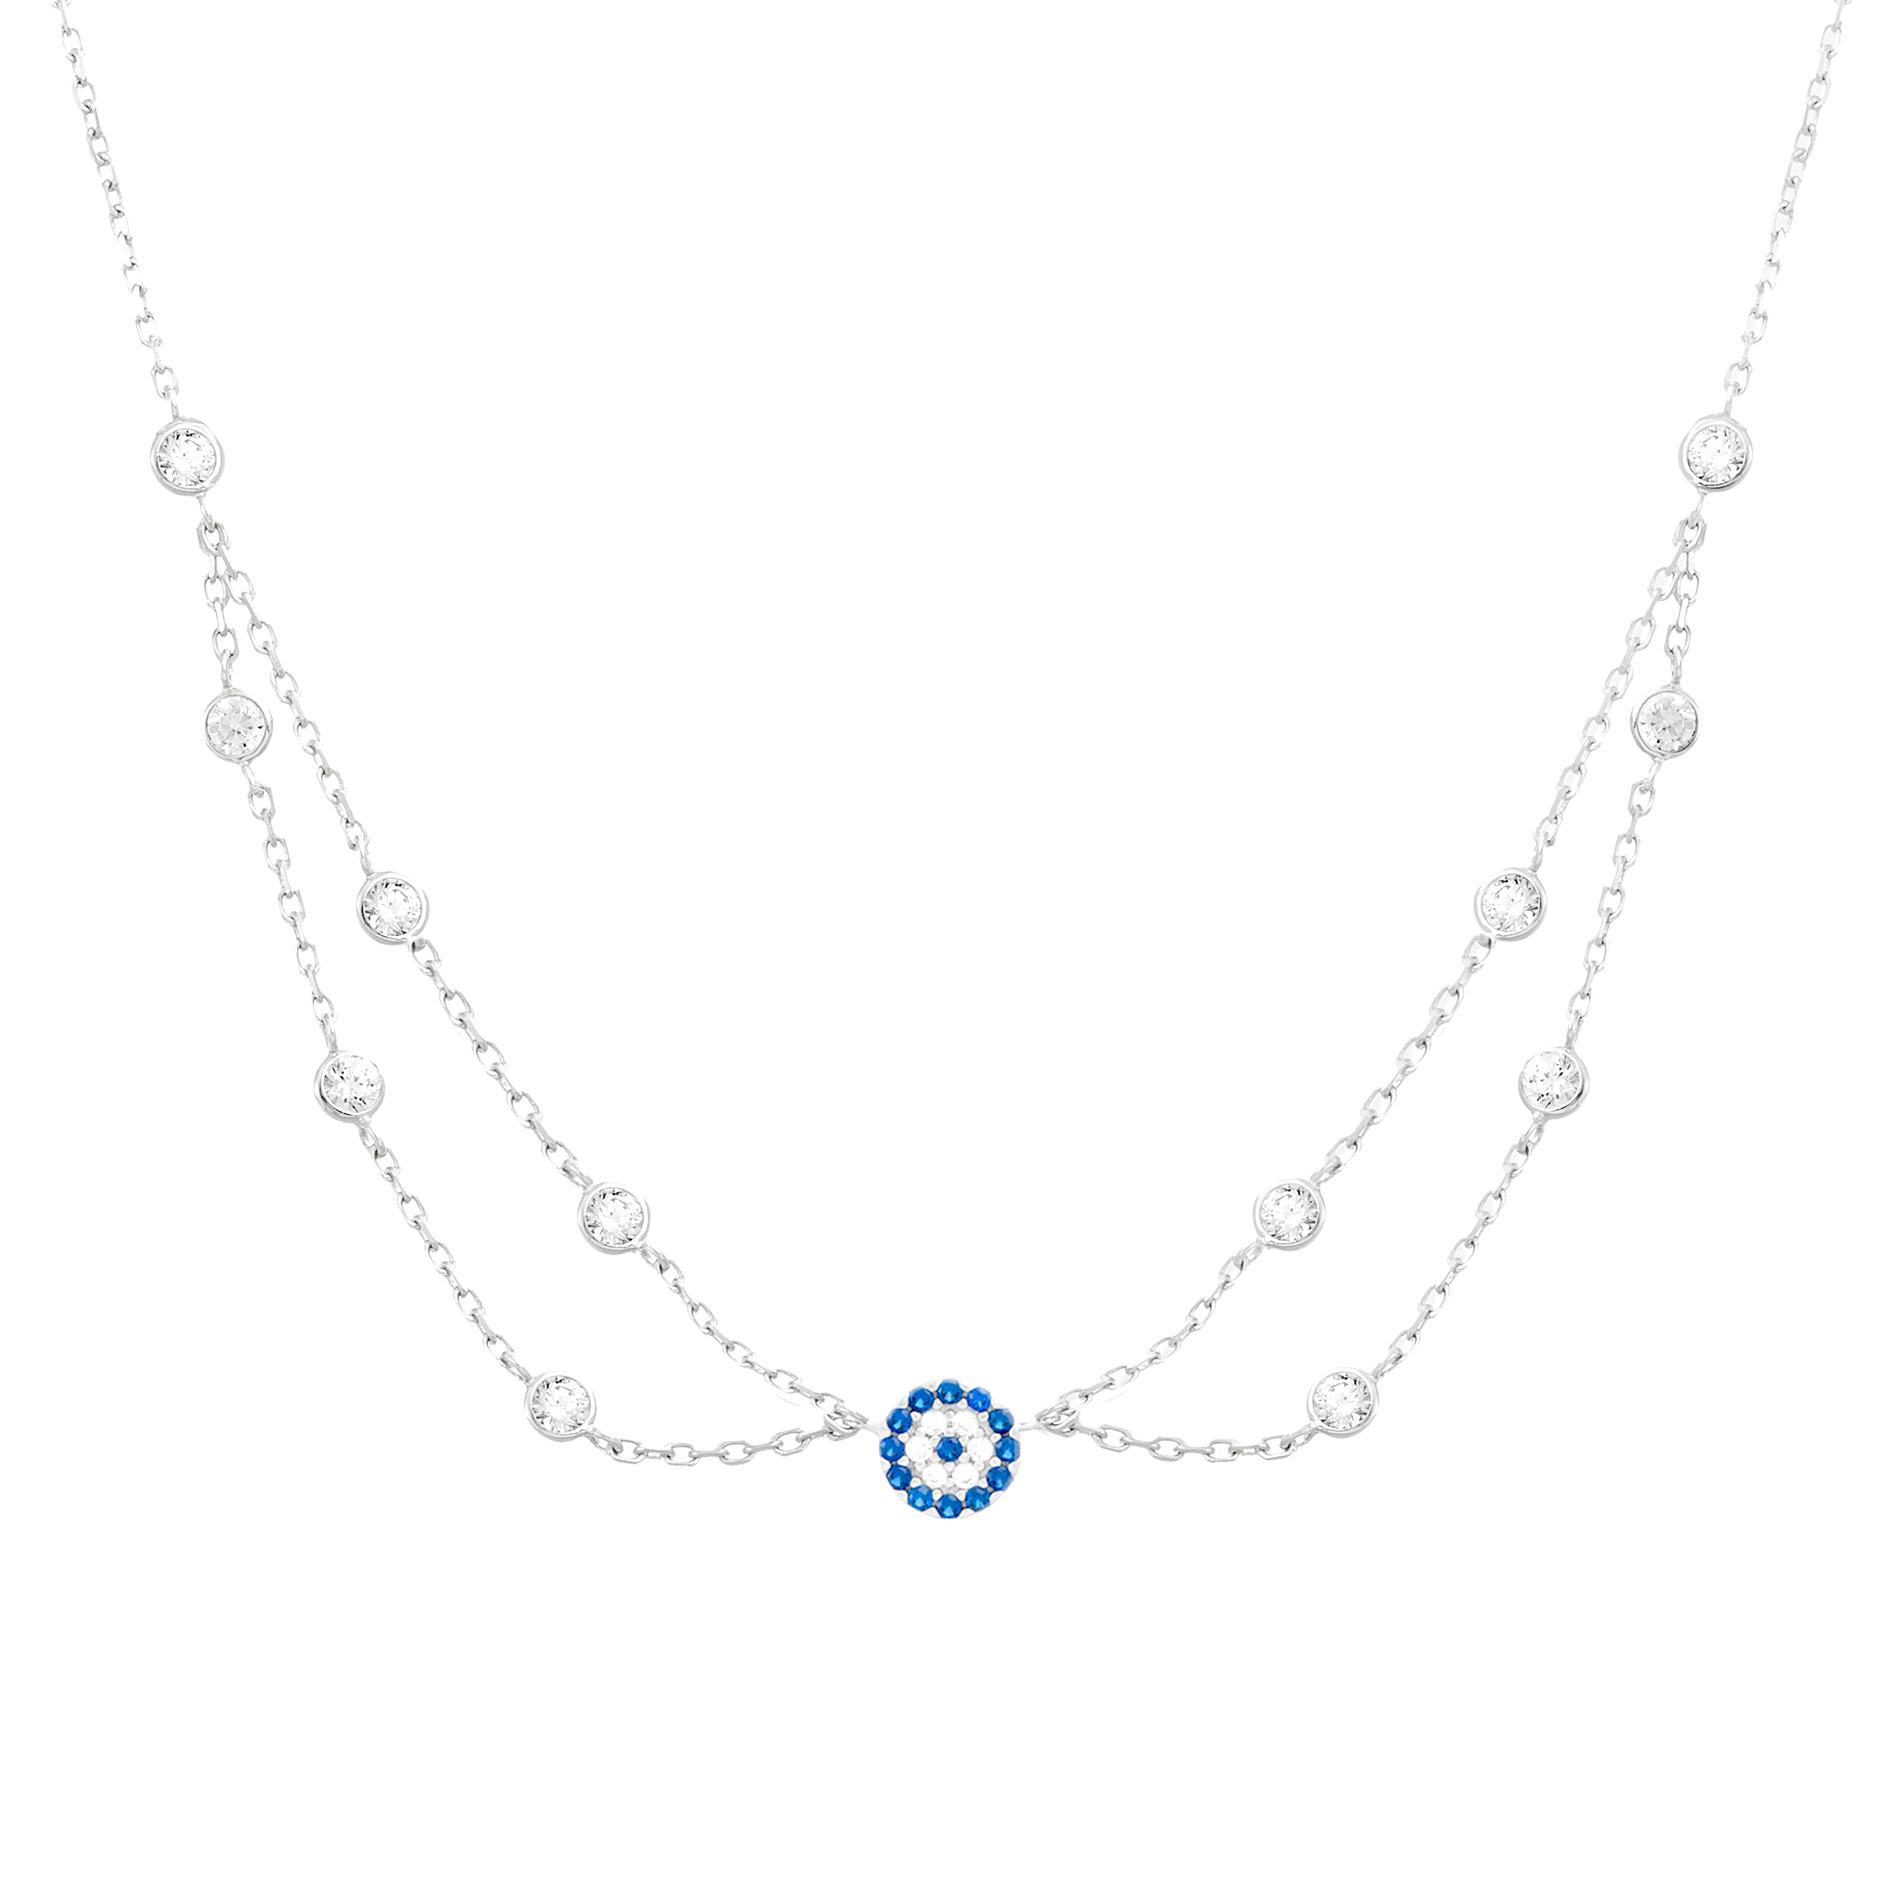 Cubic Zirconia Evil Eye Layered Choker Necklace in Sterling Silver